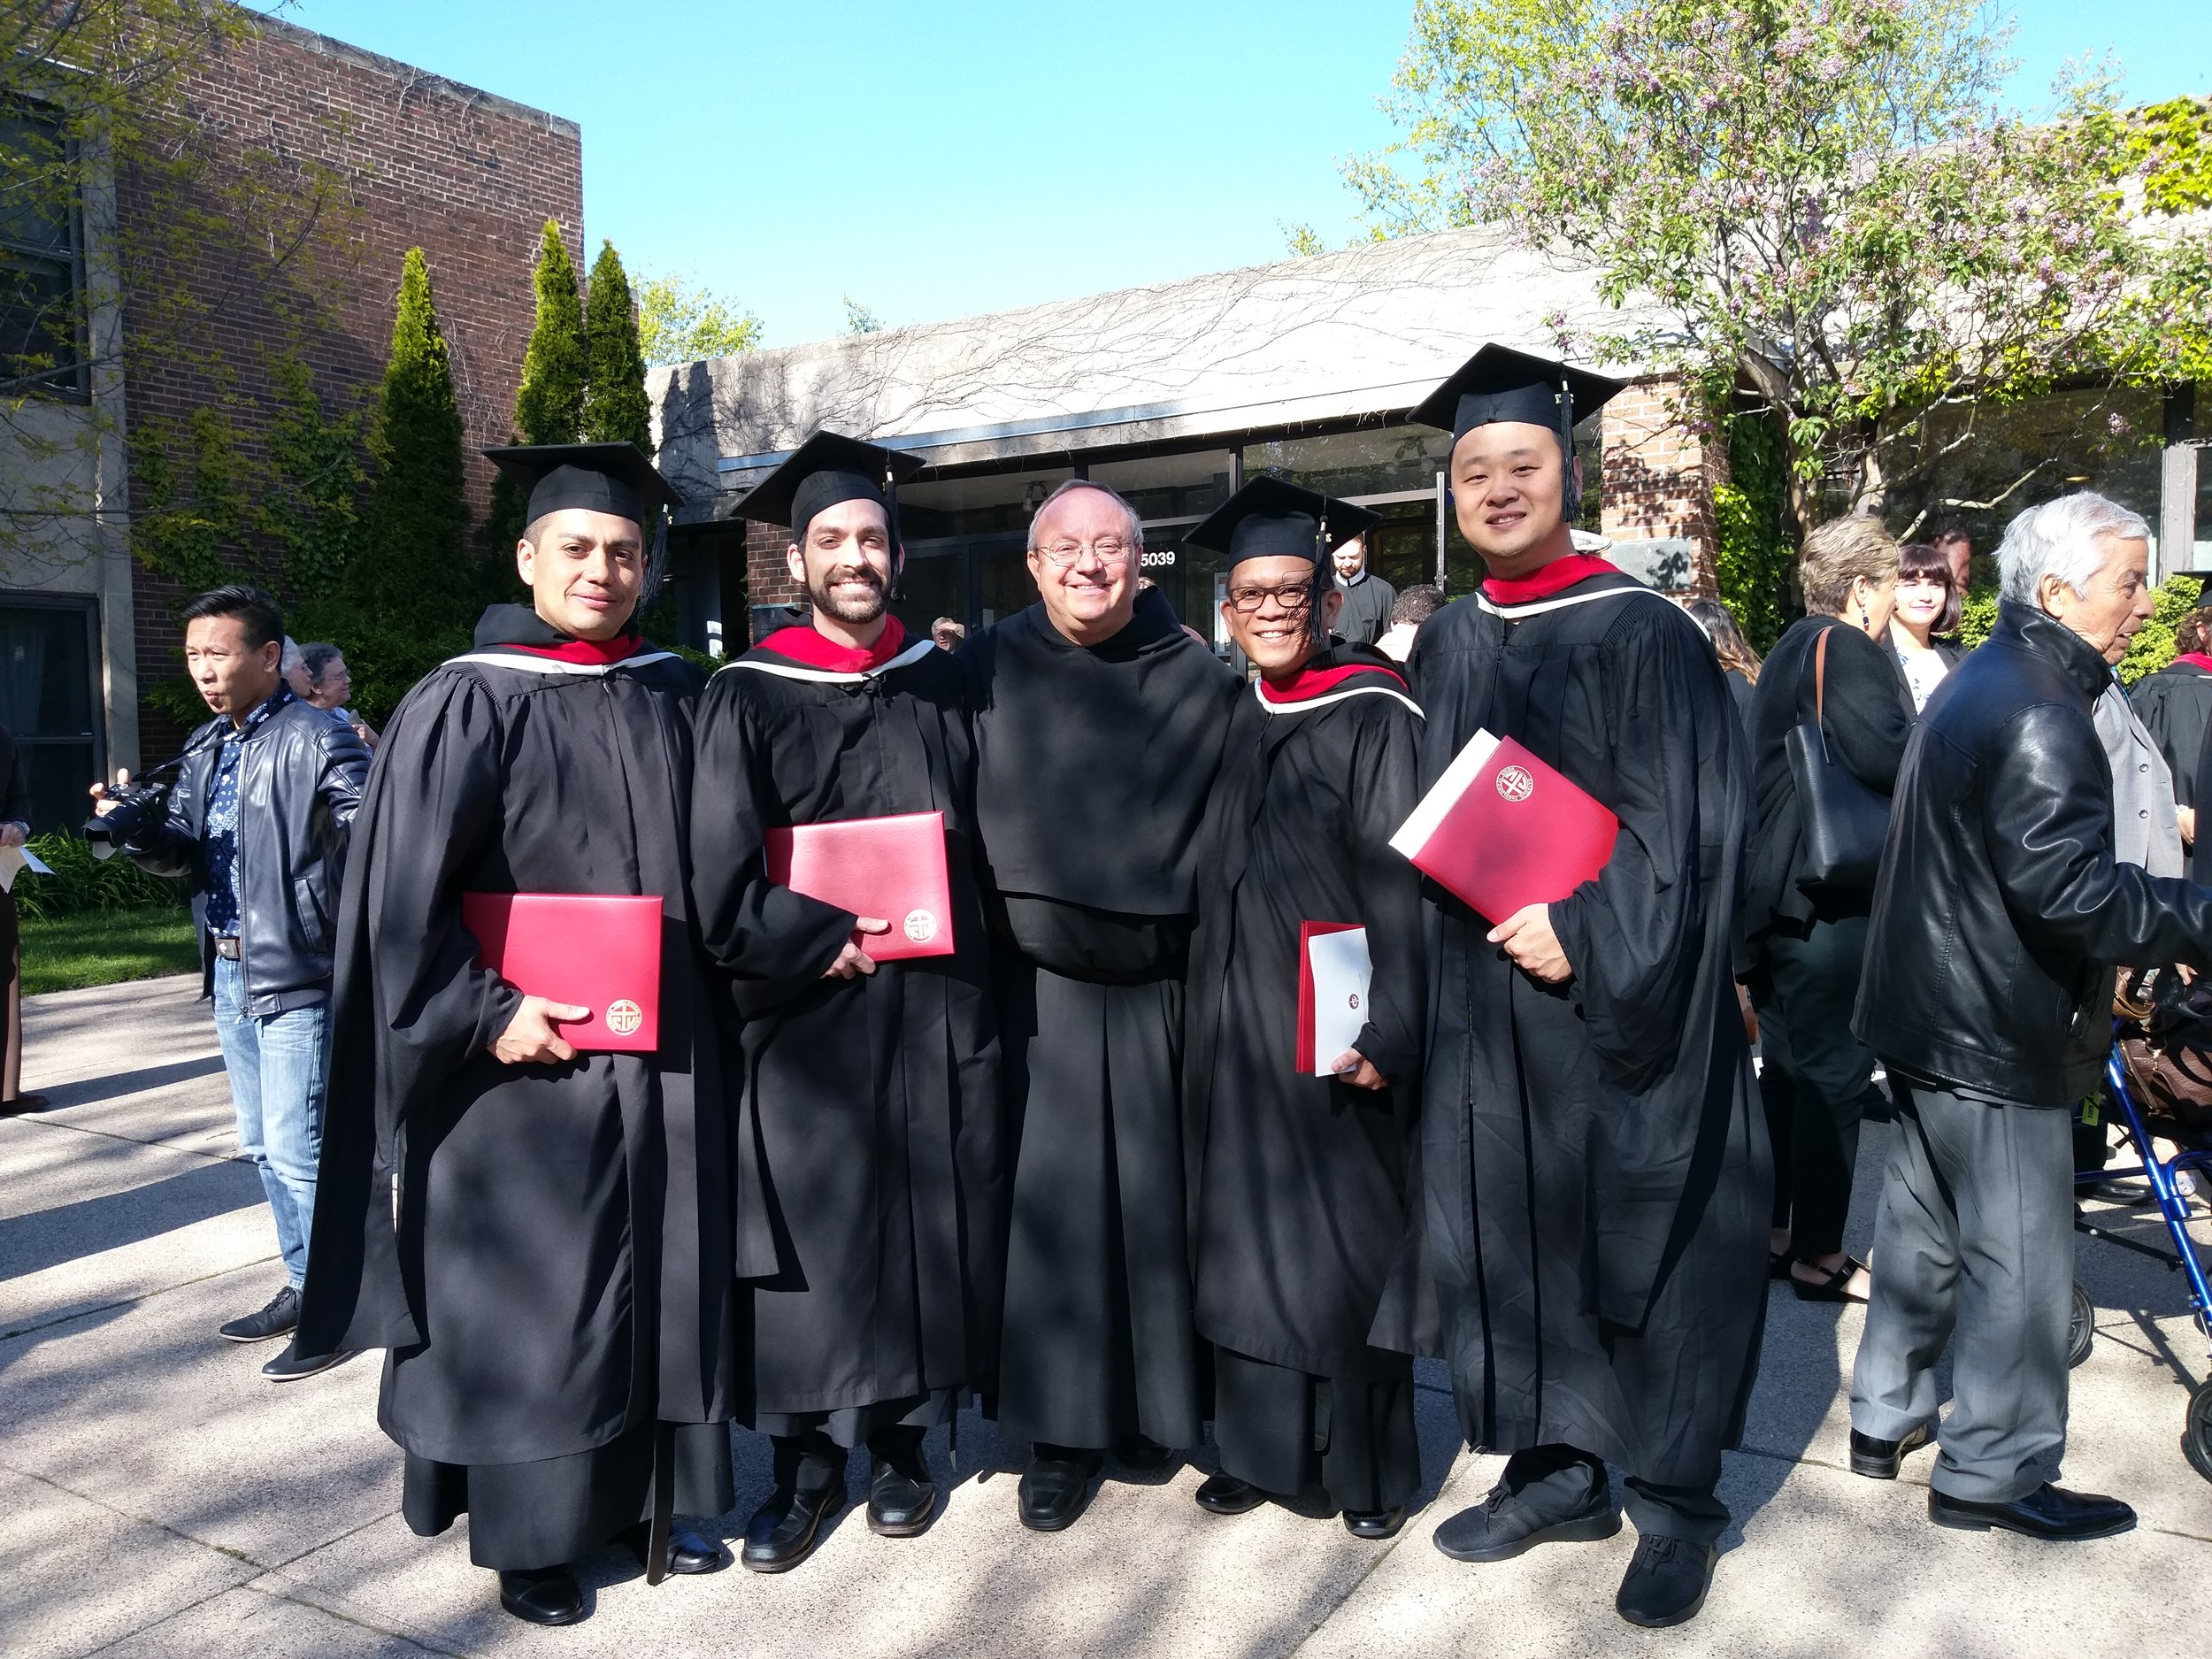 (from L to R): Br. Javier Aguilar, Br. Stephen Isley, Fr. Bernie Scianna, Br. Aldo Potencia, and Br. Philip Yang, OSA.